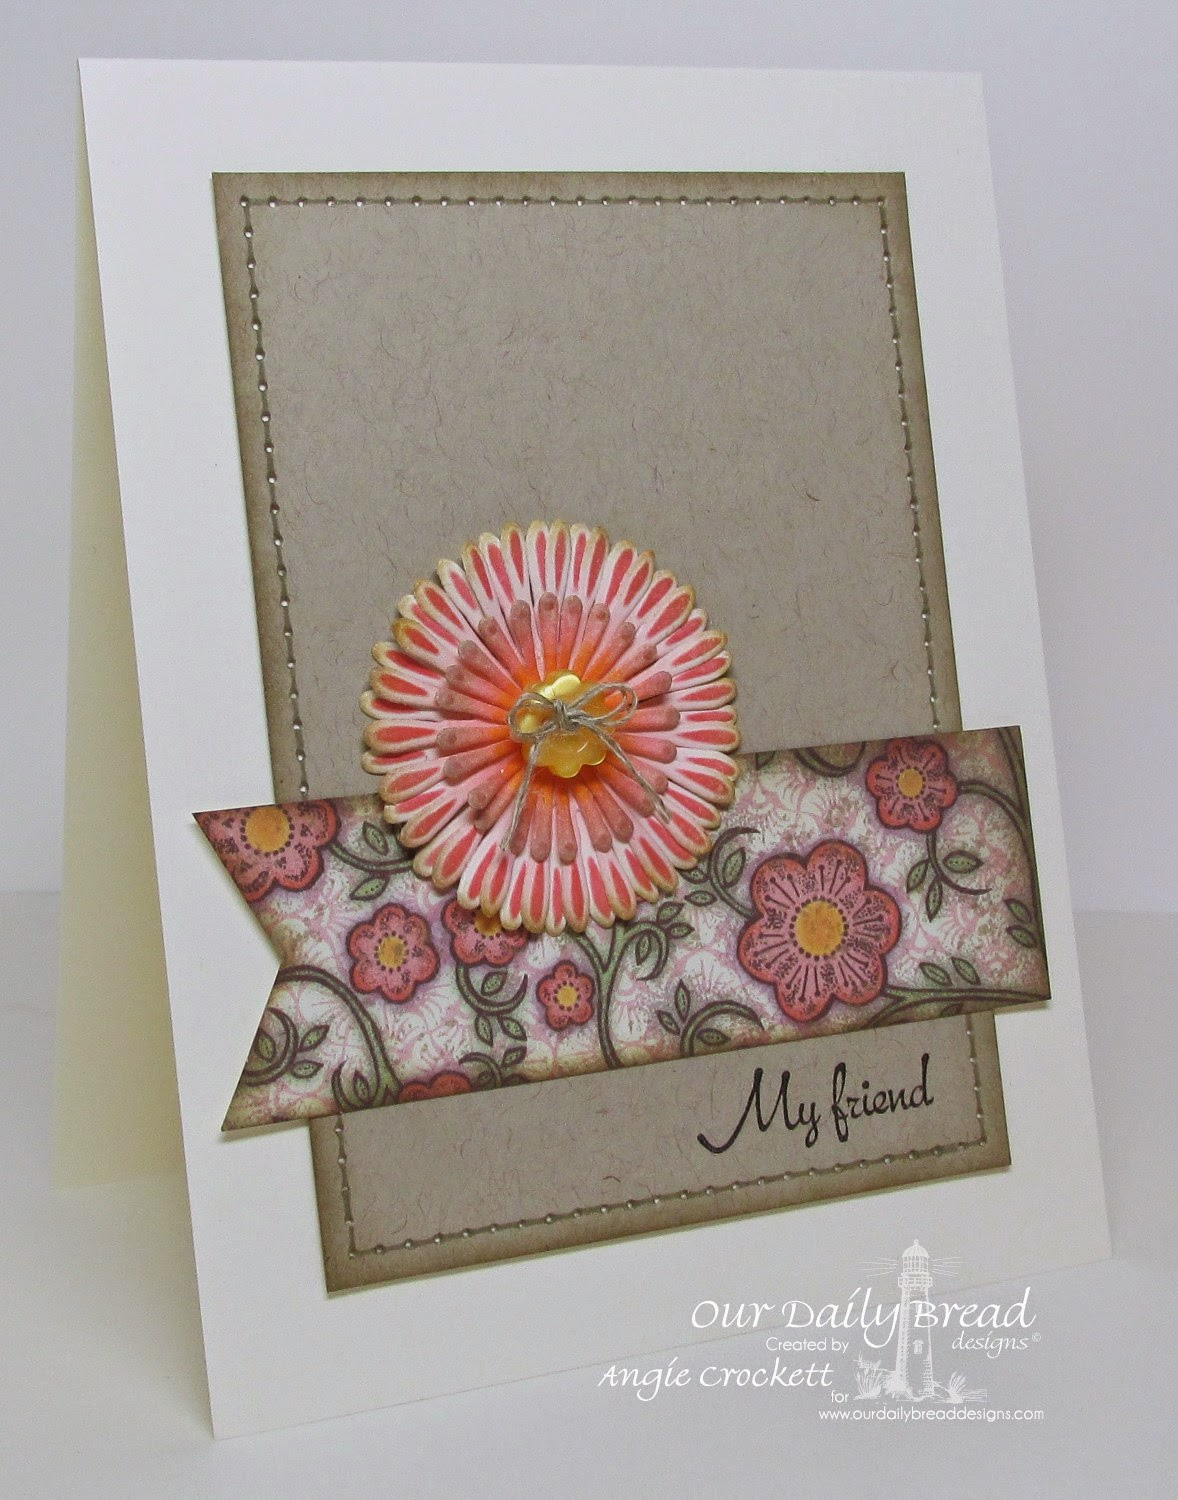 ODBD My Friend, ODBD Custom Asters and Leaves Die Set, ODBD Blooming Garden Designer Paper Collection, Card Designer Angie Crockett